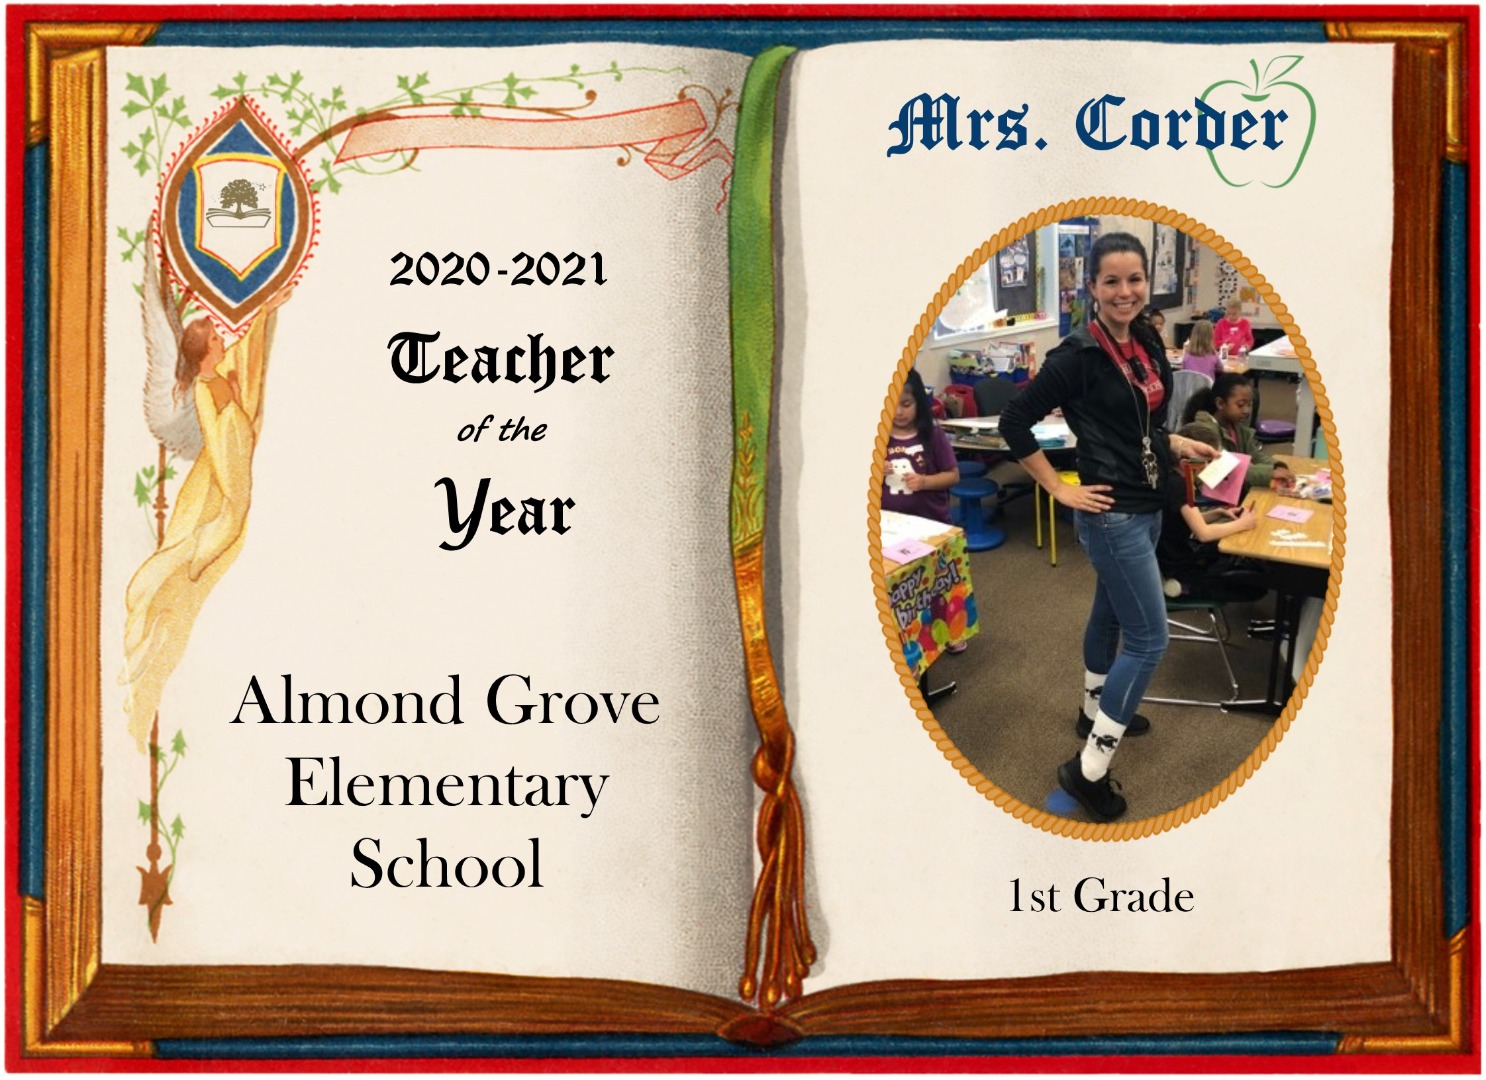 Mrs. Corder, 2020-2021 Almond Grove Teacher of the Year